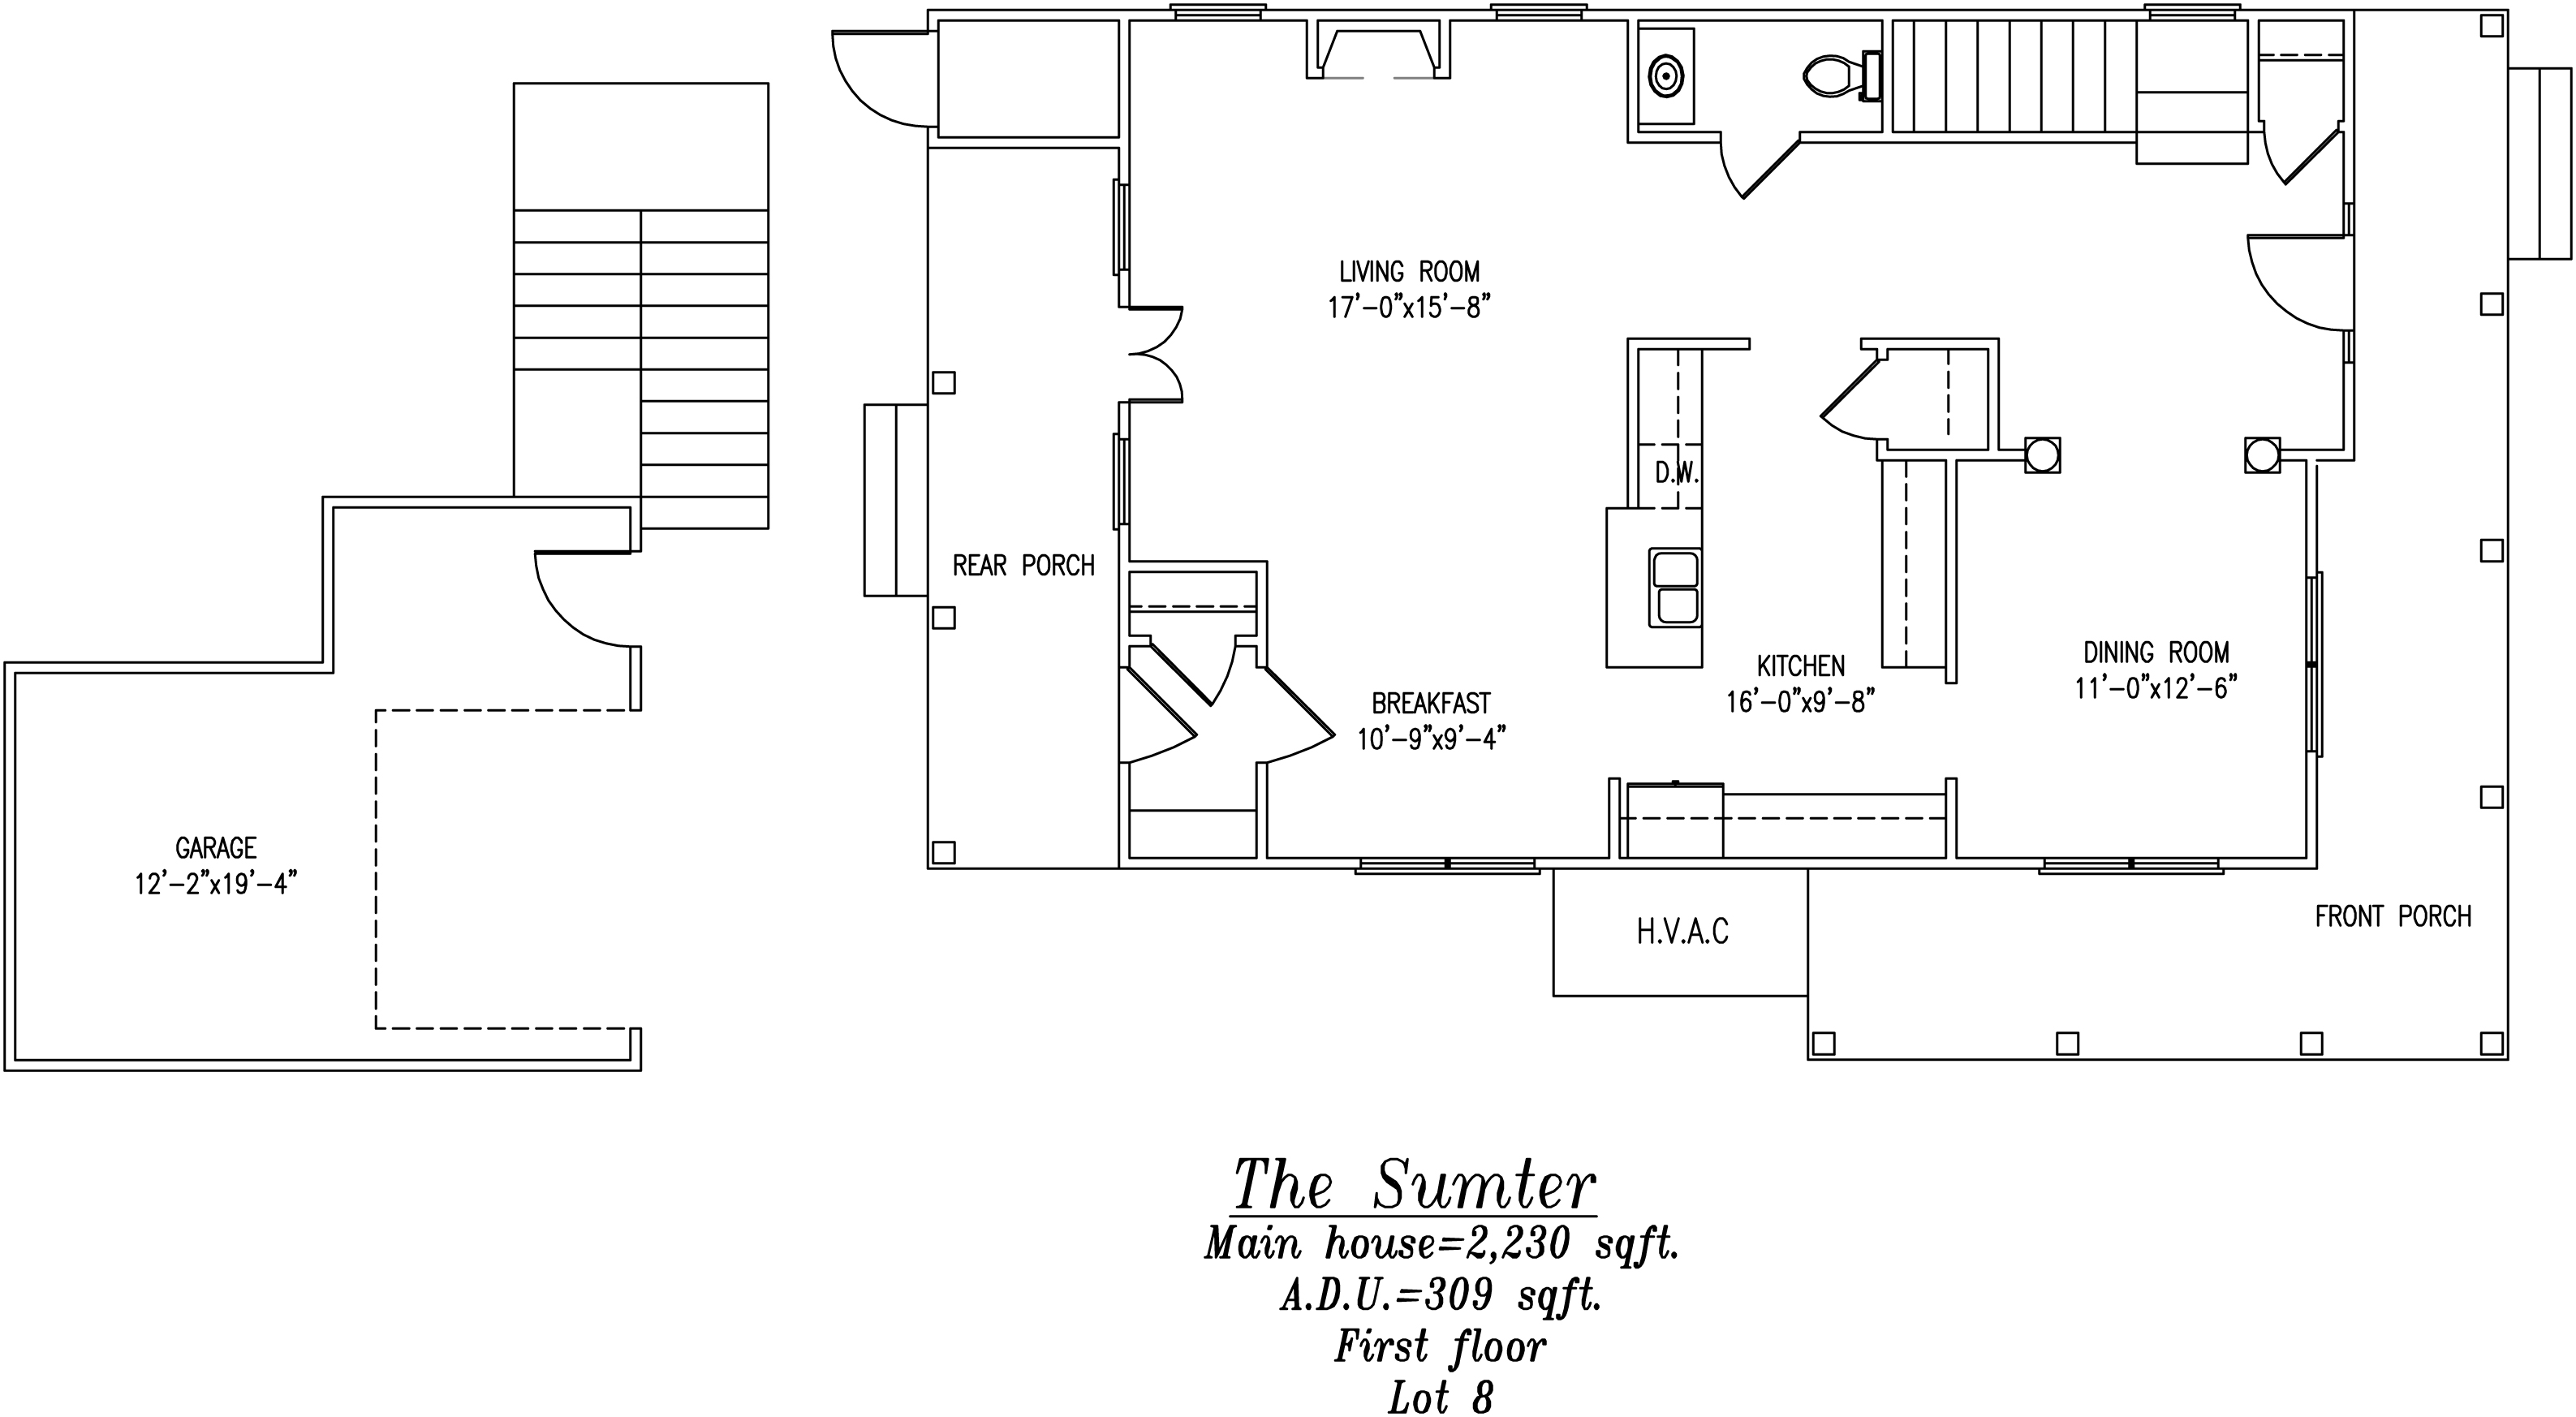 Sumter First floor Plan